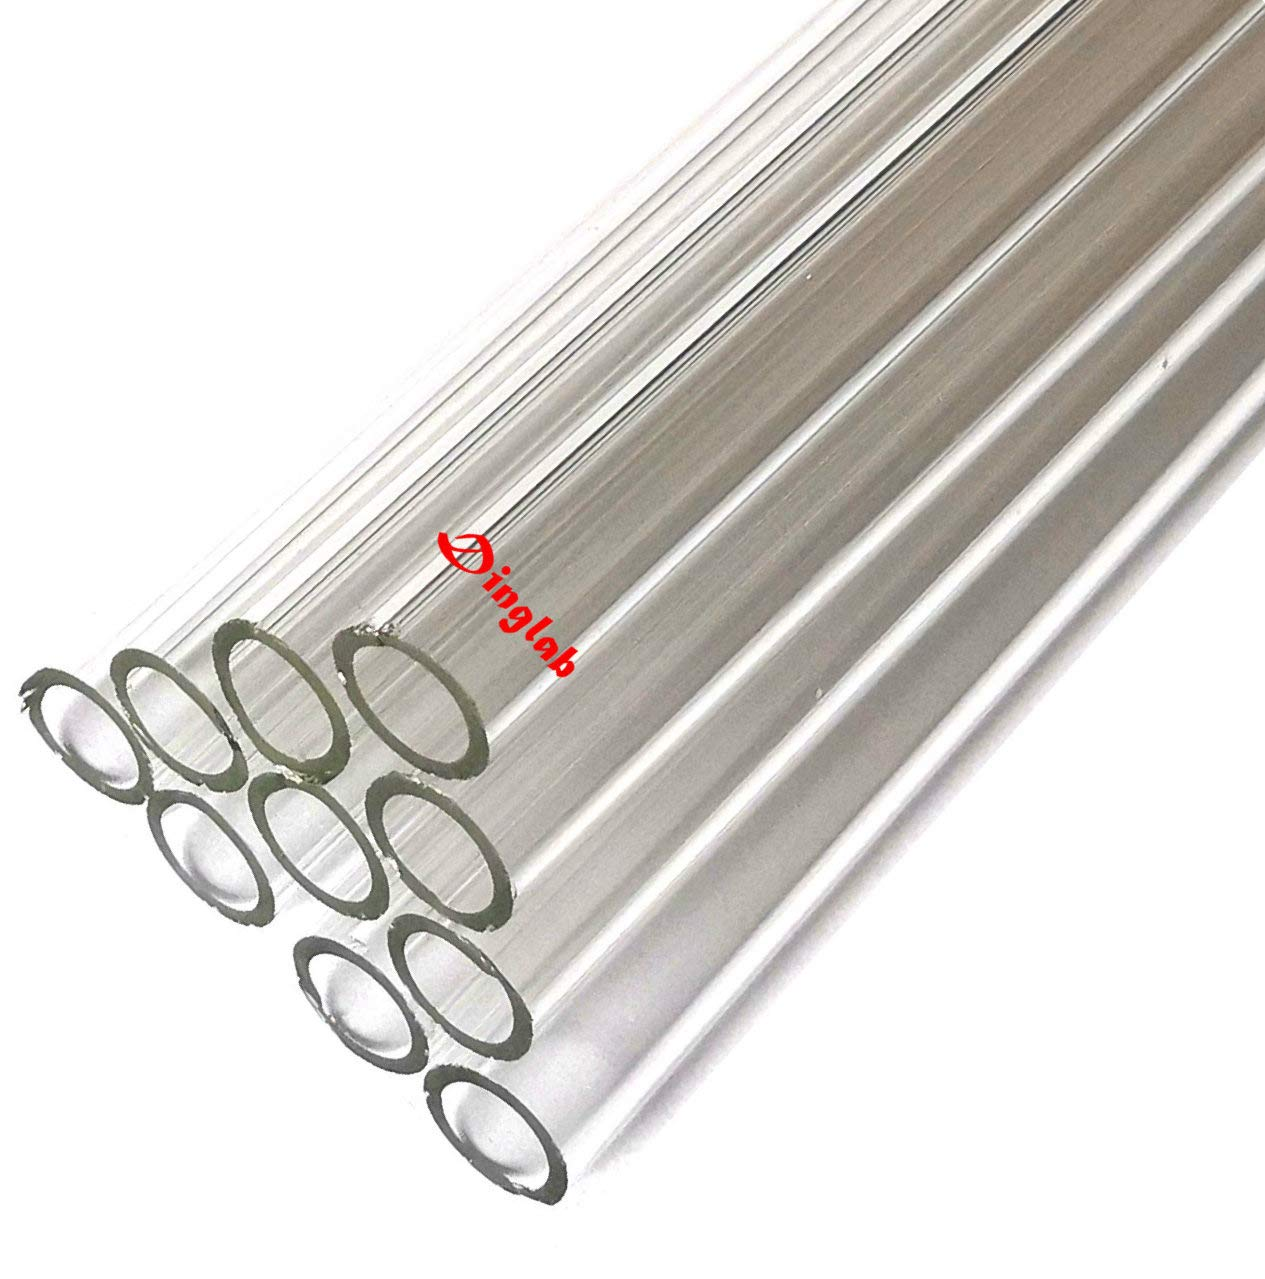 Dinglab 300mm,Blowing Glass Tube,OD 9mm,1.5mm Thcik,Made Form Borosilicate,10Pcs/Lot by dinglab